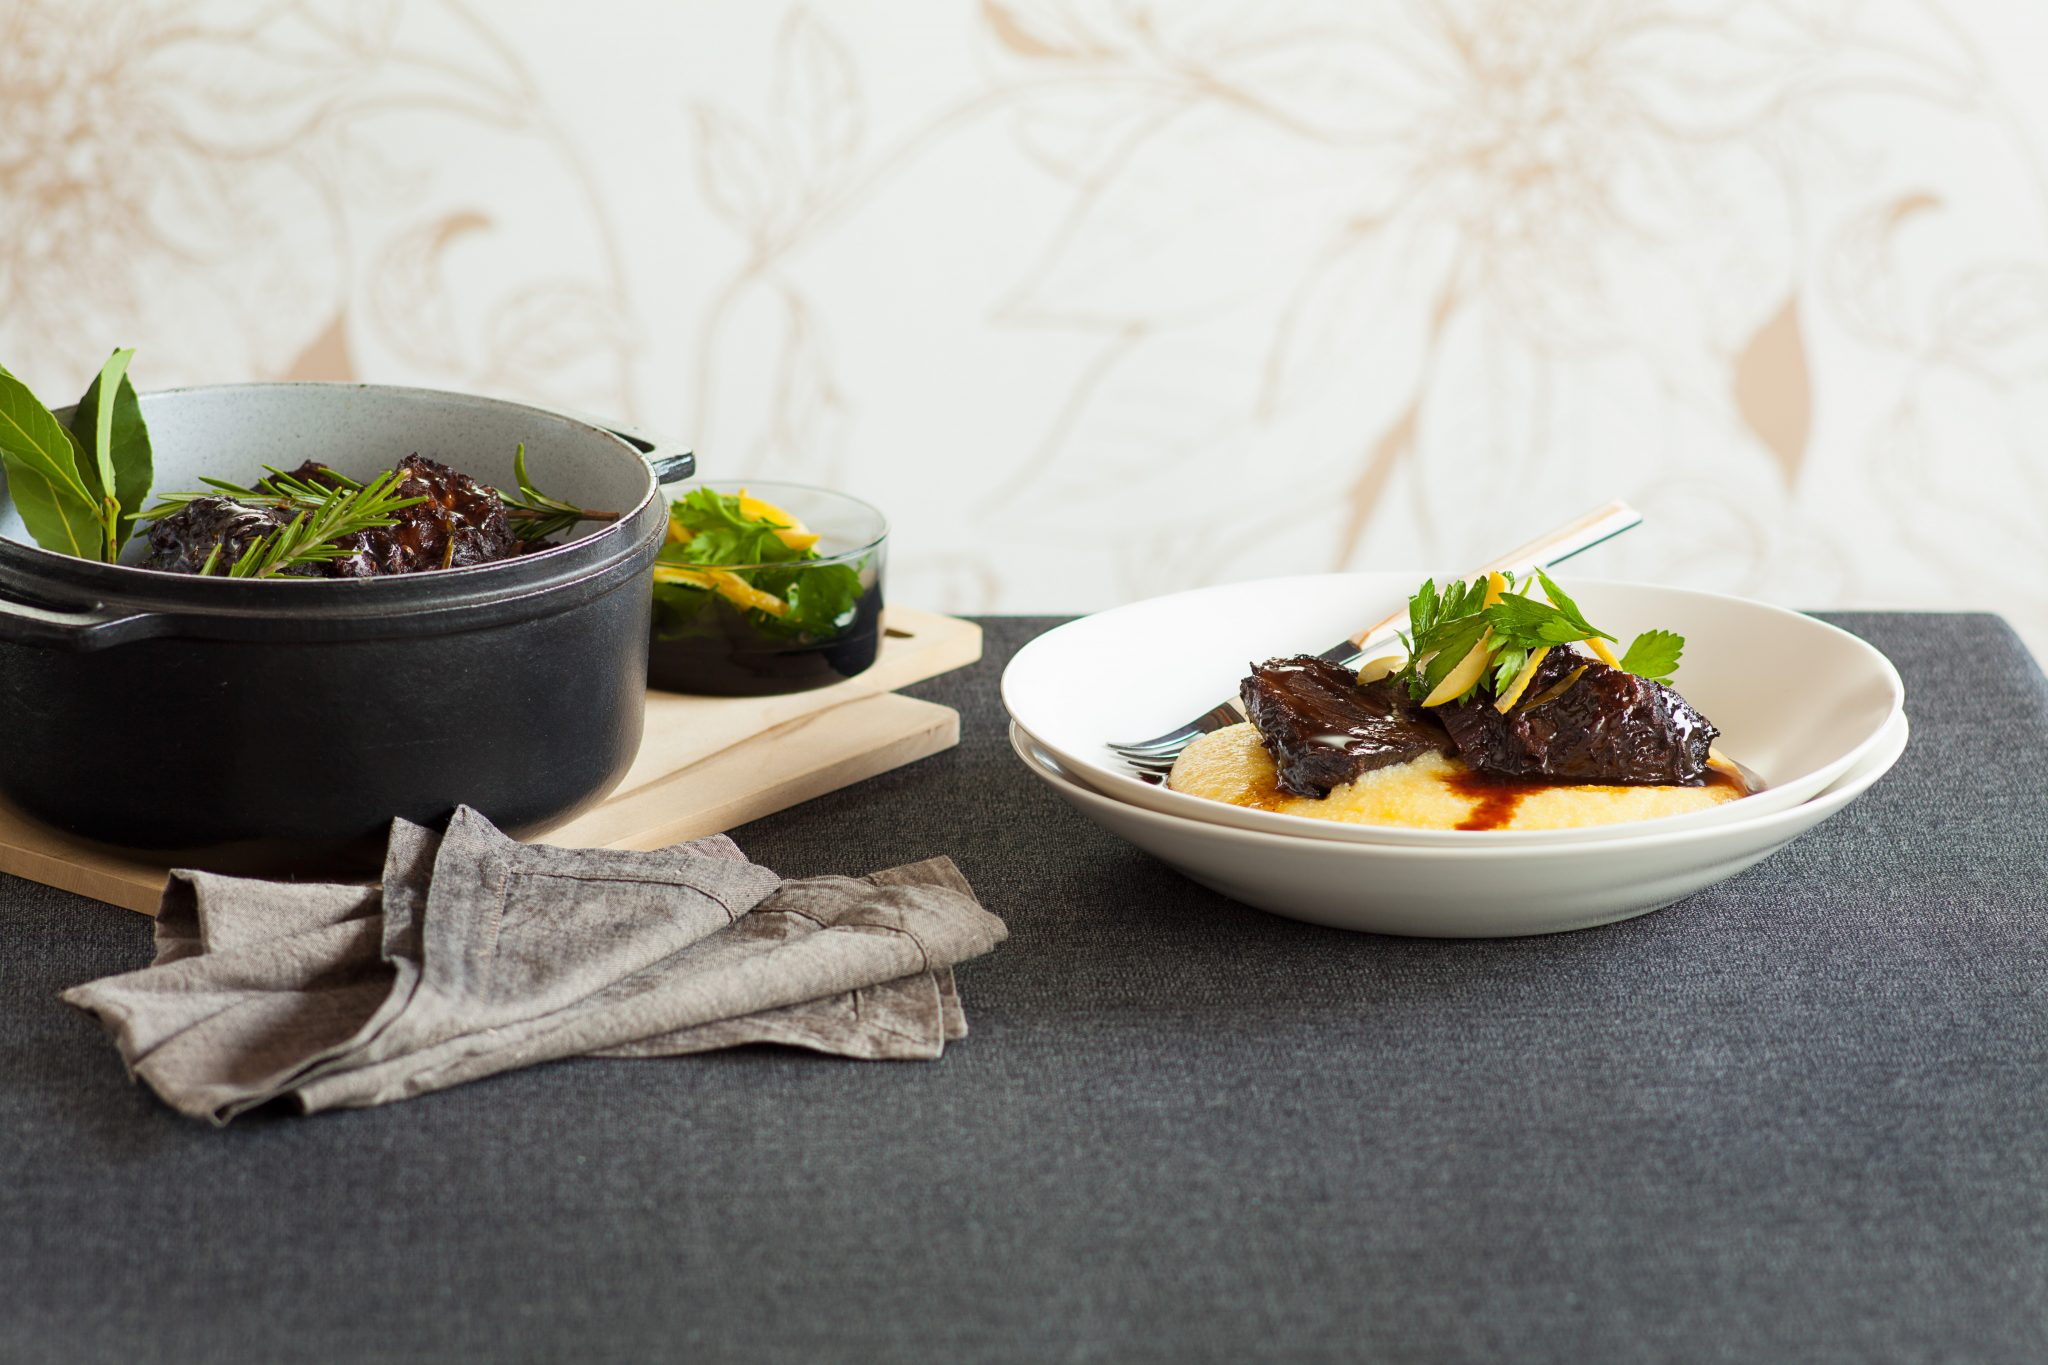 Recipe: Beef cheeks in red wine with creamy mashed potato